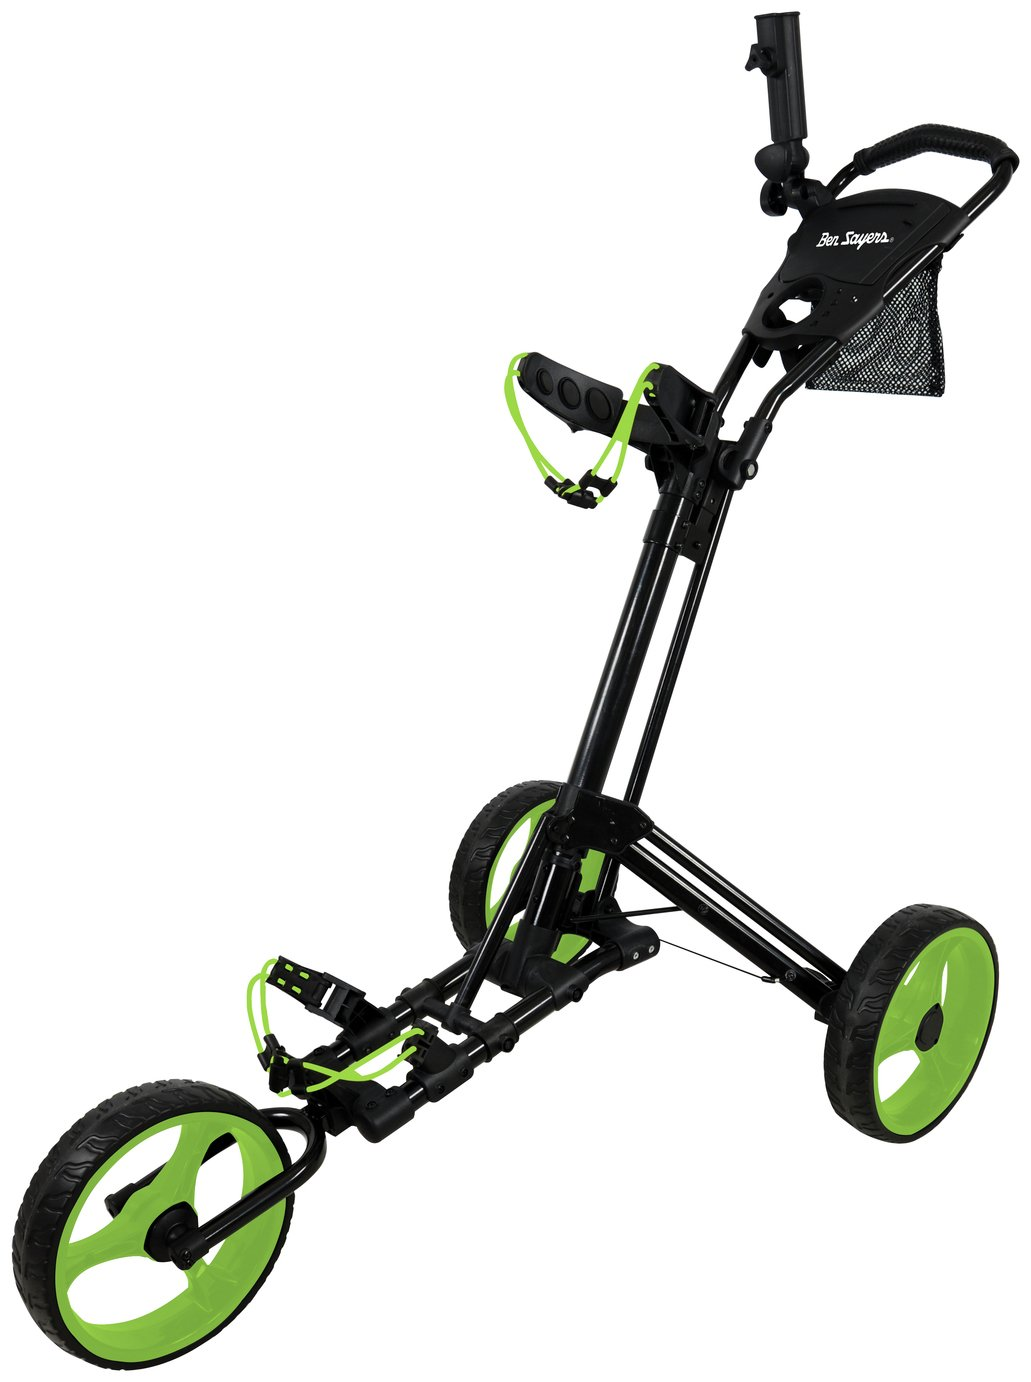 Image of Ben Sayers 3 Wheel Easy Fold Trolley